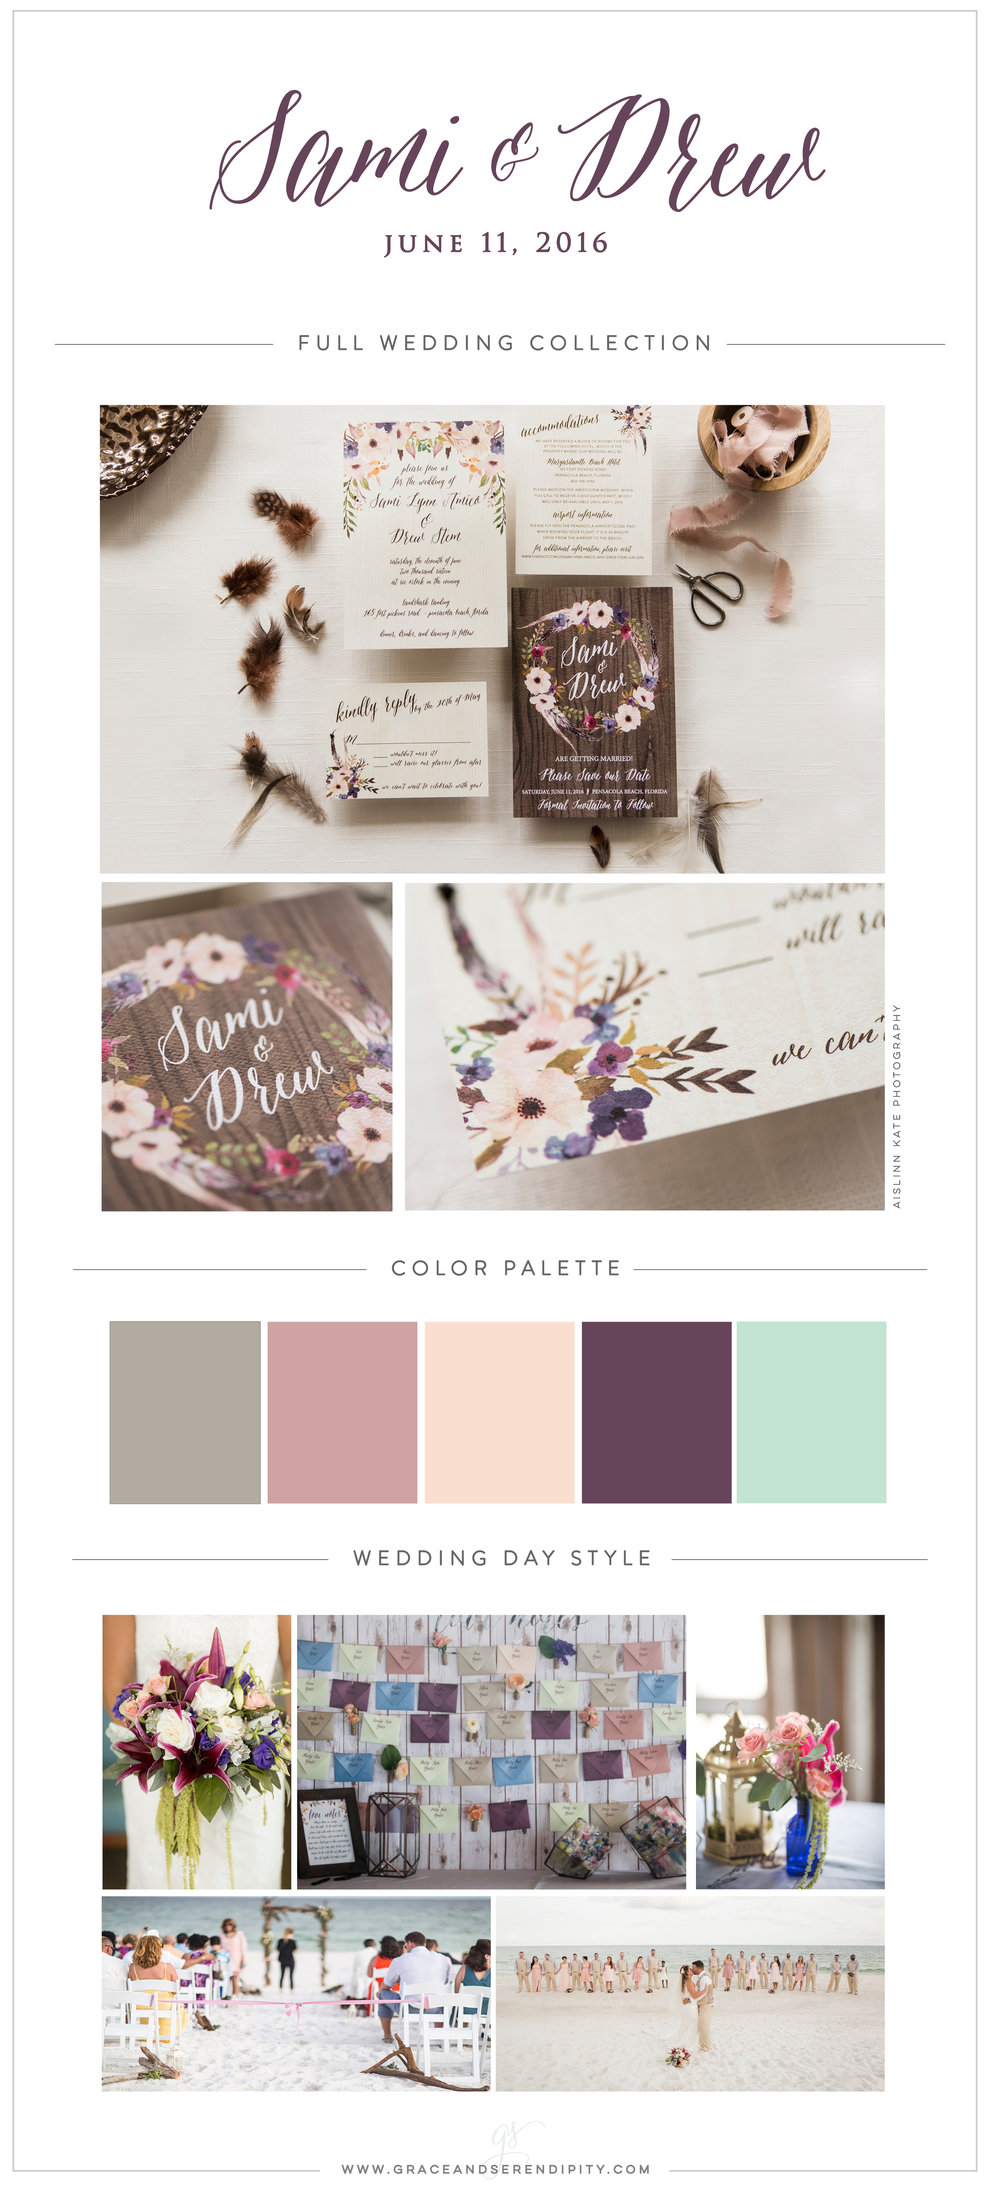 Eggplant, Rose, and Mint Color Palette - Bohemian Beach Wedding - Photography by Aislinn Kate, Fiore of Pensacola, and Grace and Serendipity